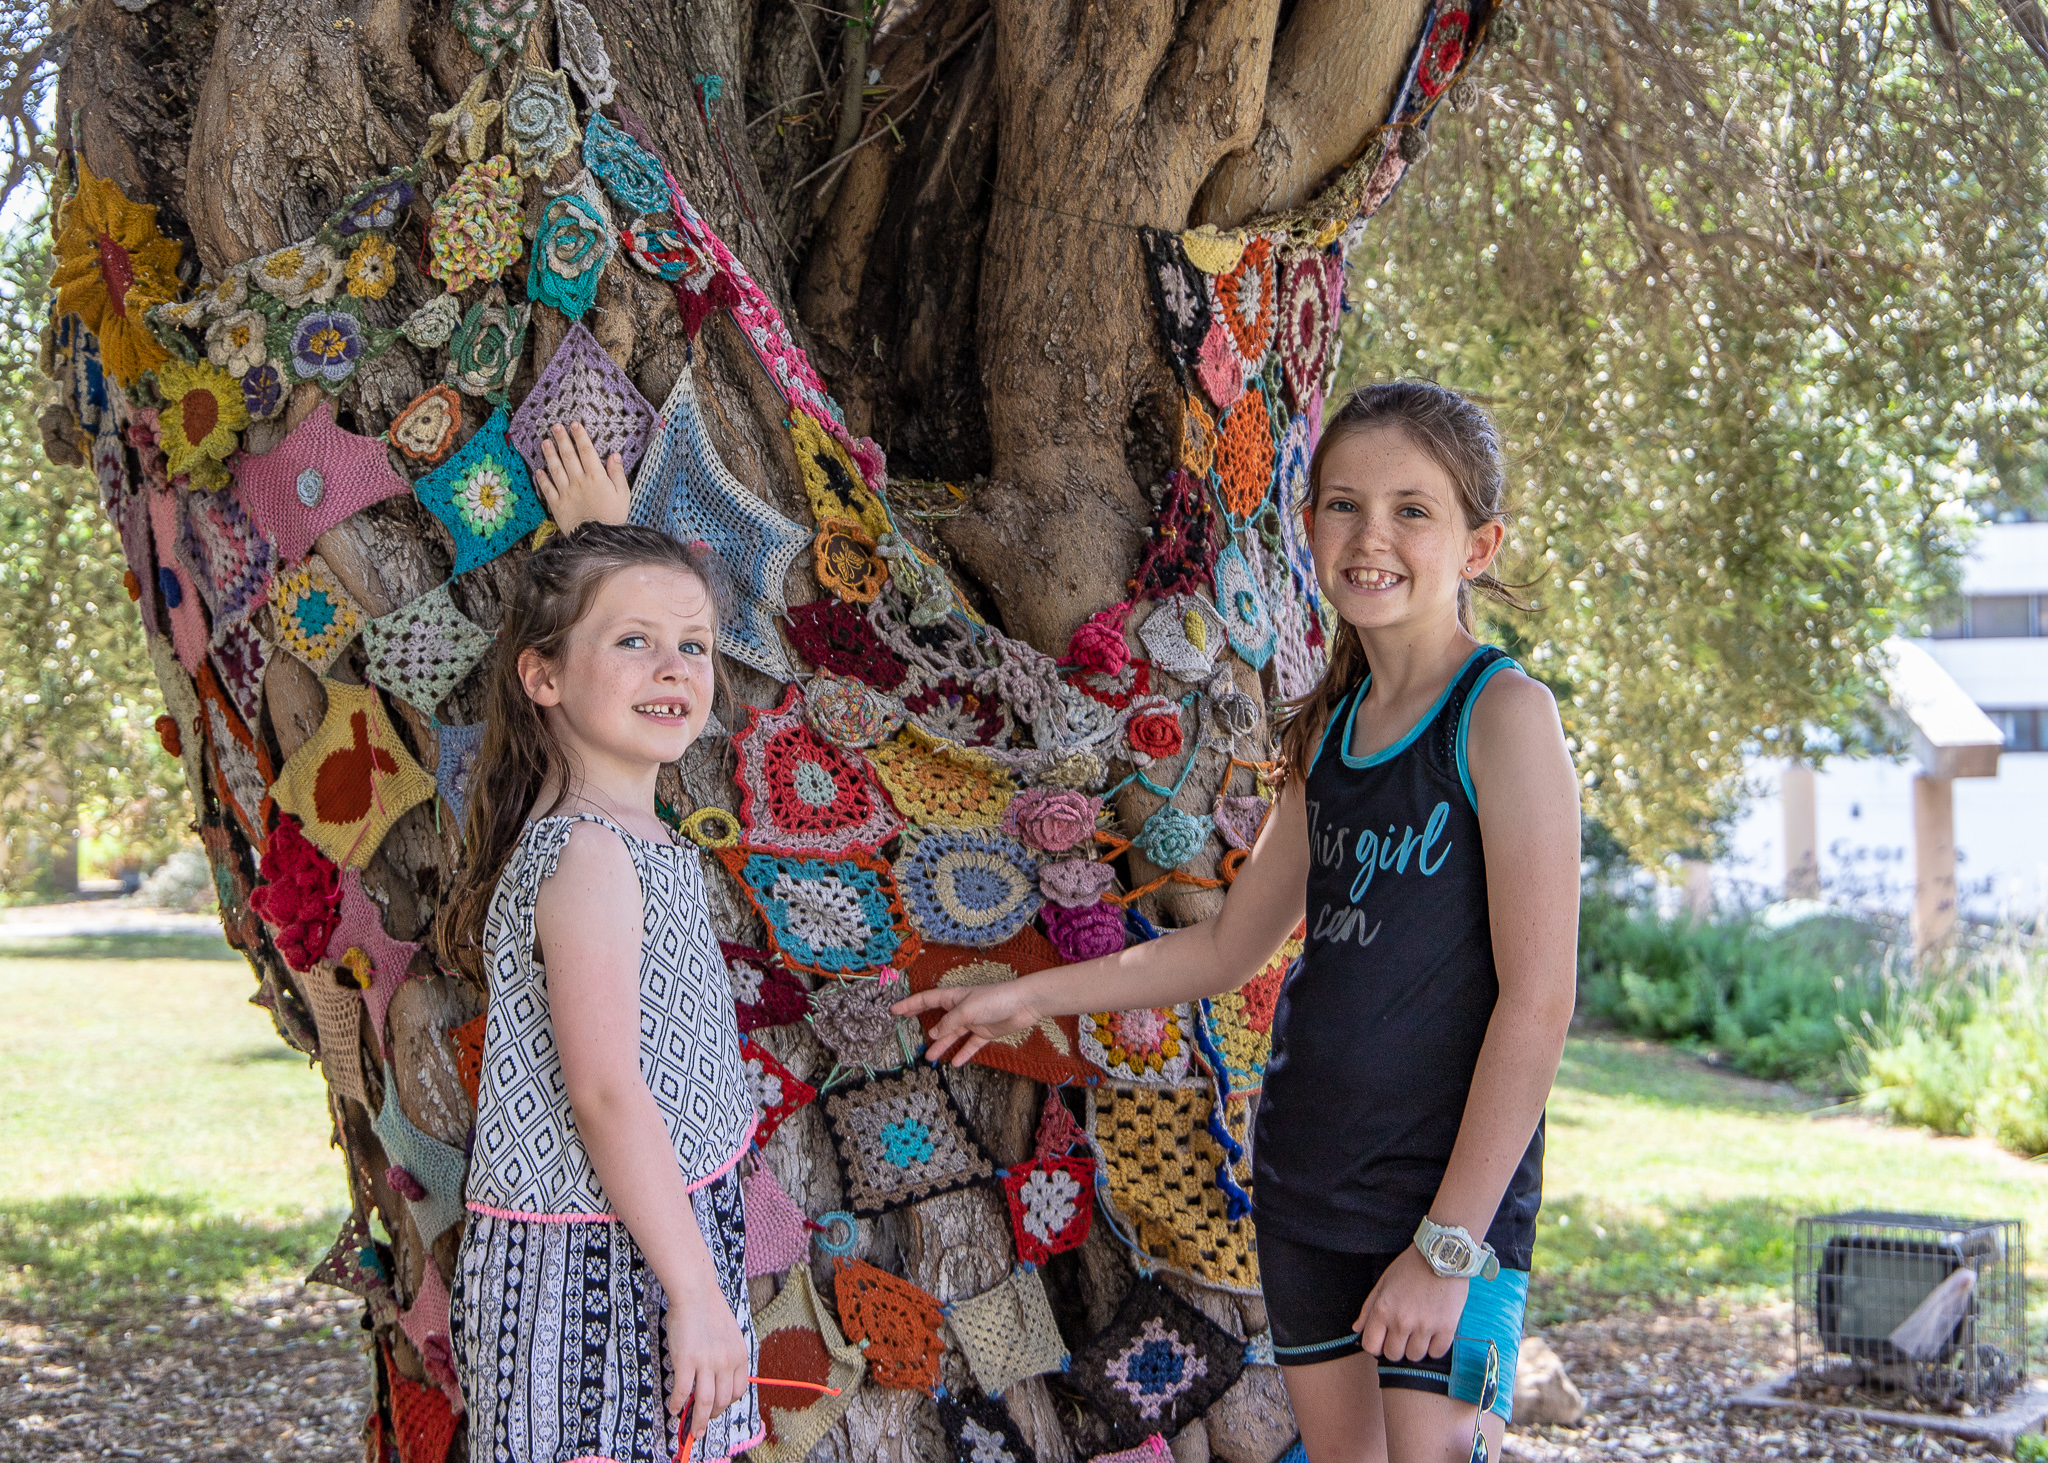 A crocheted tree just outside the Municipal Gallery